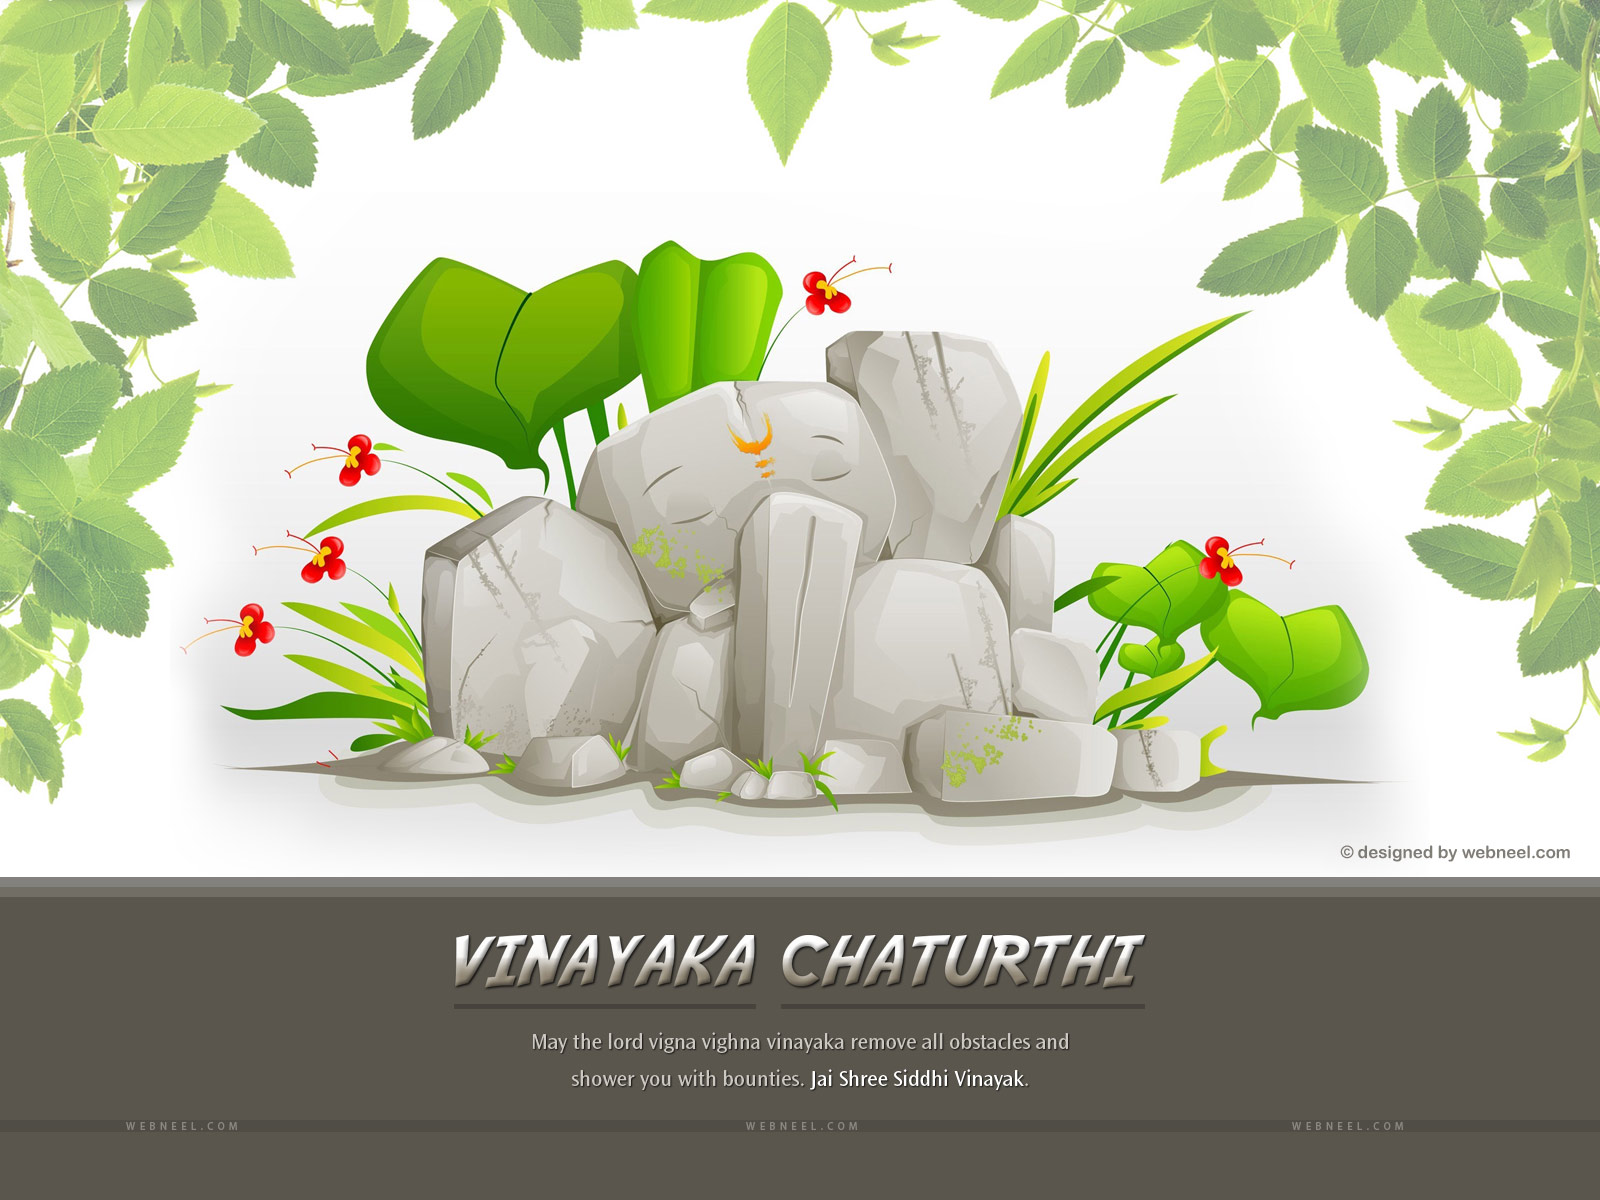 lord ganesh chathurthi wallpaper